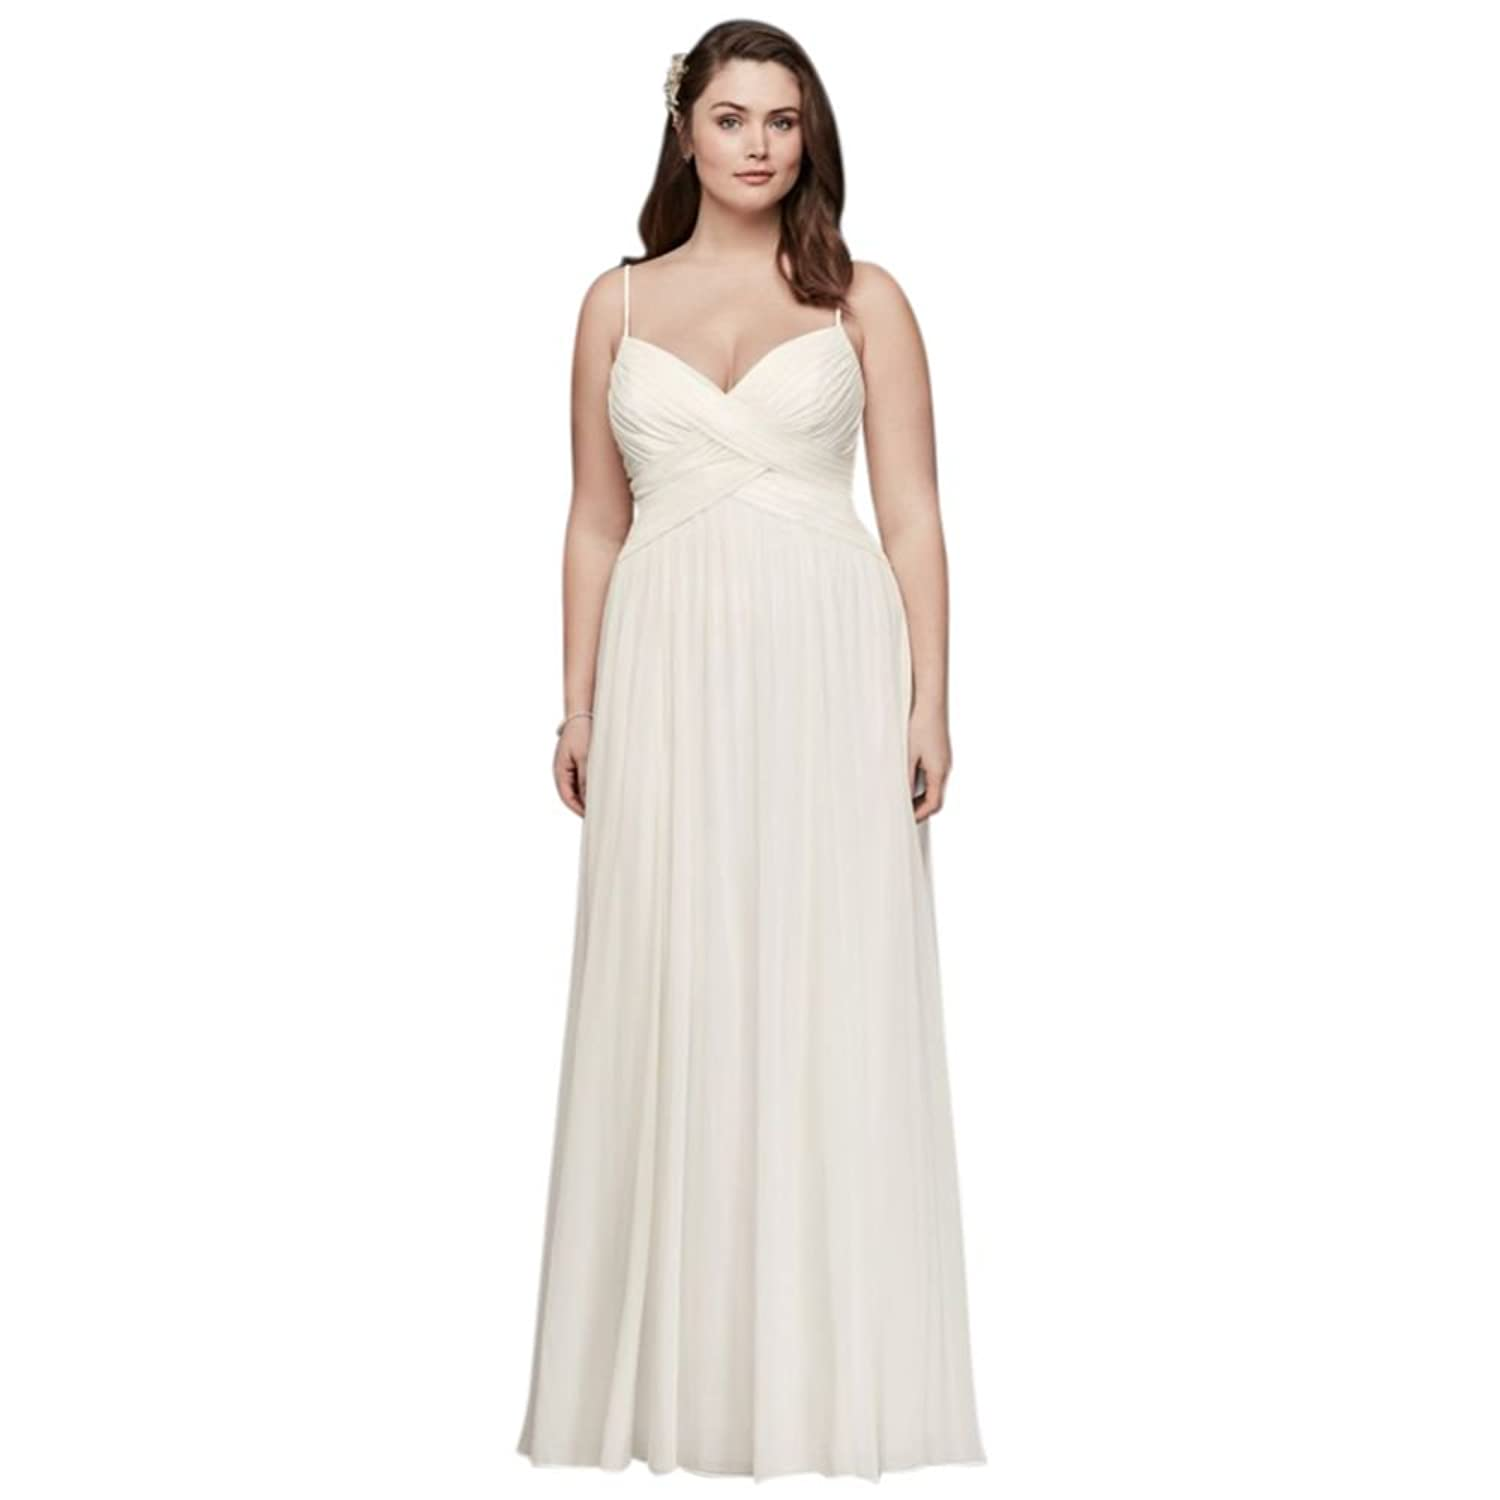 Davids bridal plus size long sleeve wedding dress with low back davids bridal ruched bodice chiffon plus size wedding dress style 9wg3856 ombrellifo Image collections